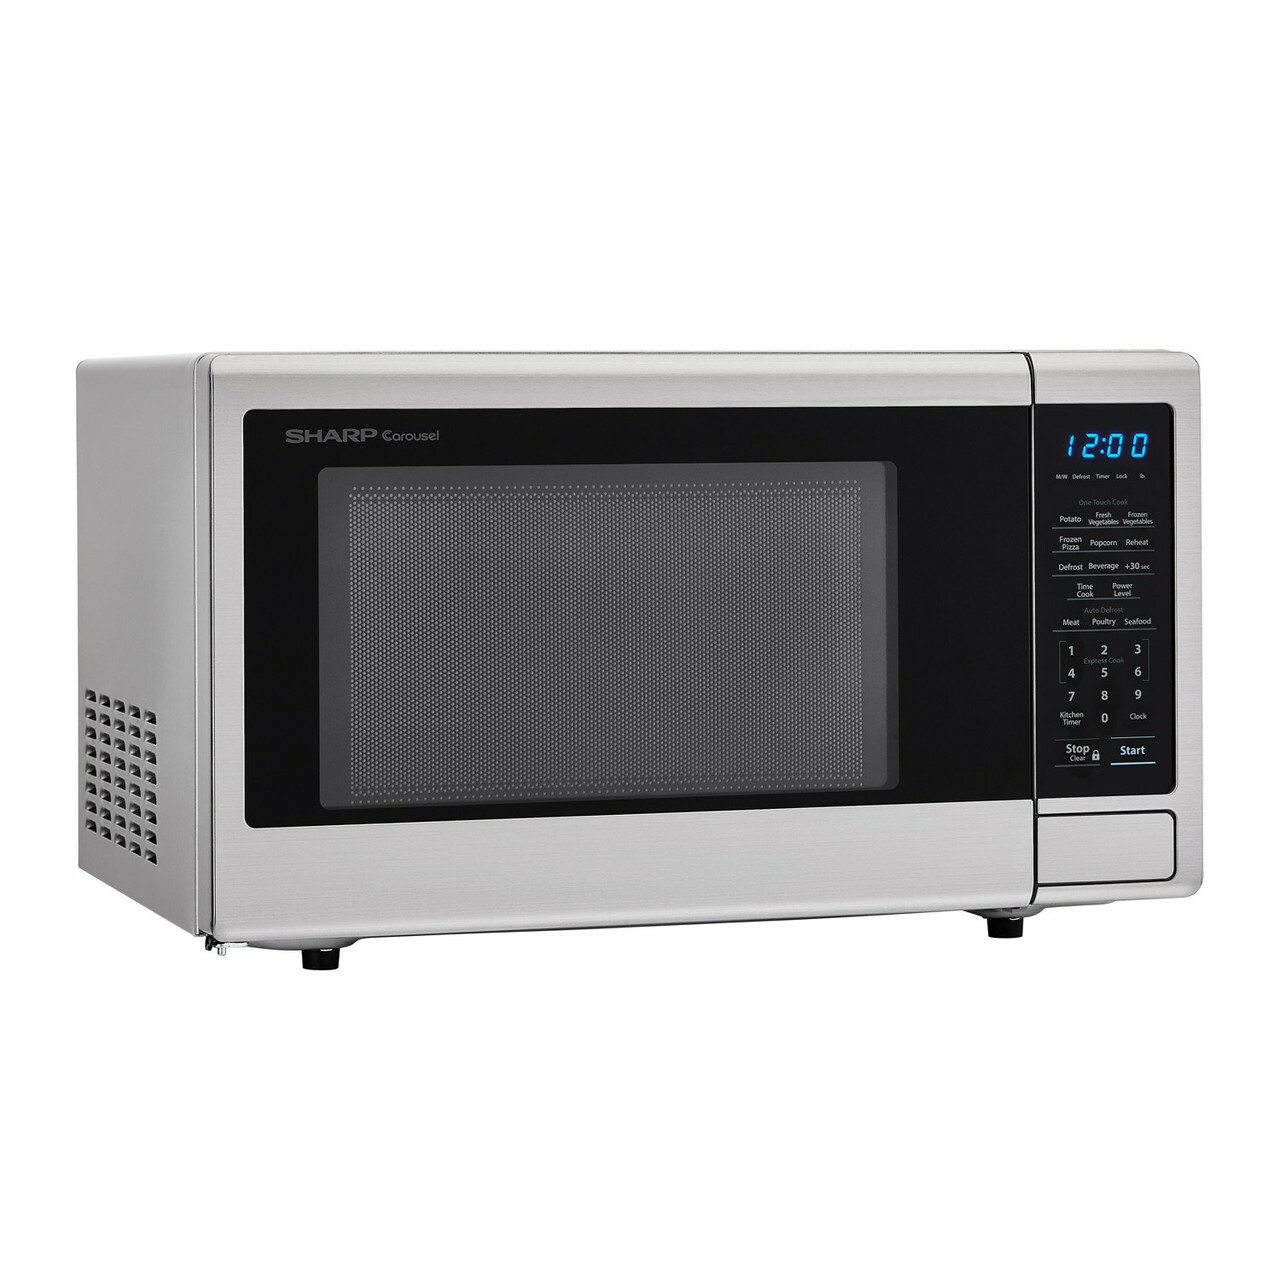 1.1 cu. ft. Sharp Stainless Steel Countertop Microwave (SMC1132CS) – right angle view